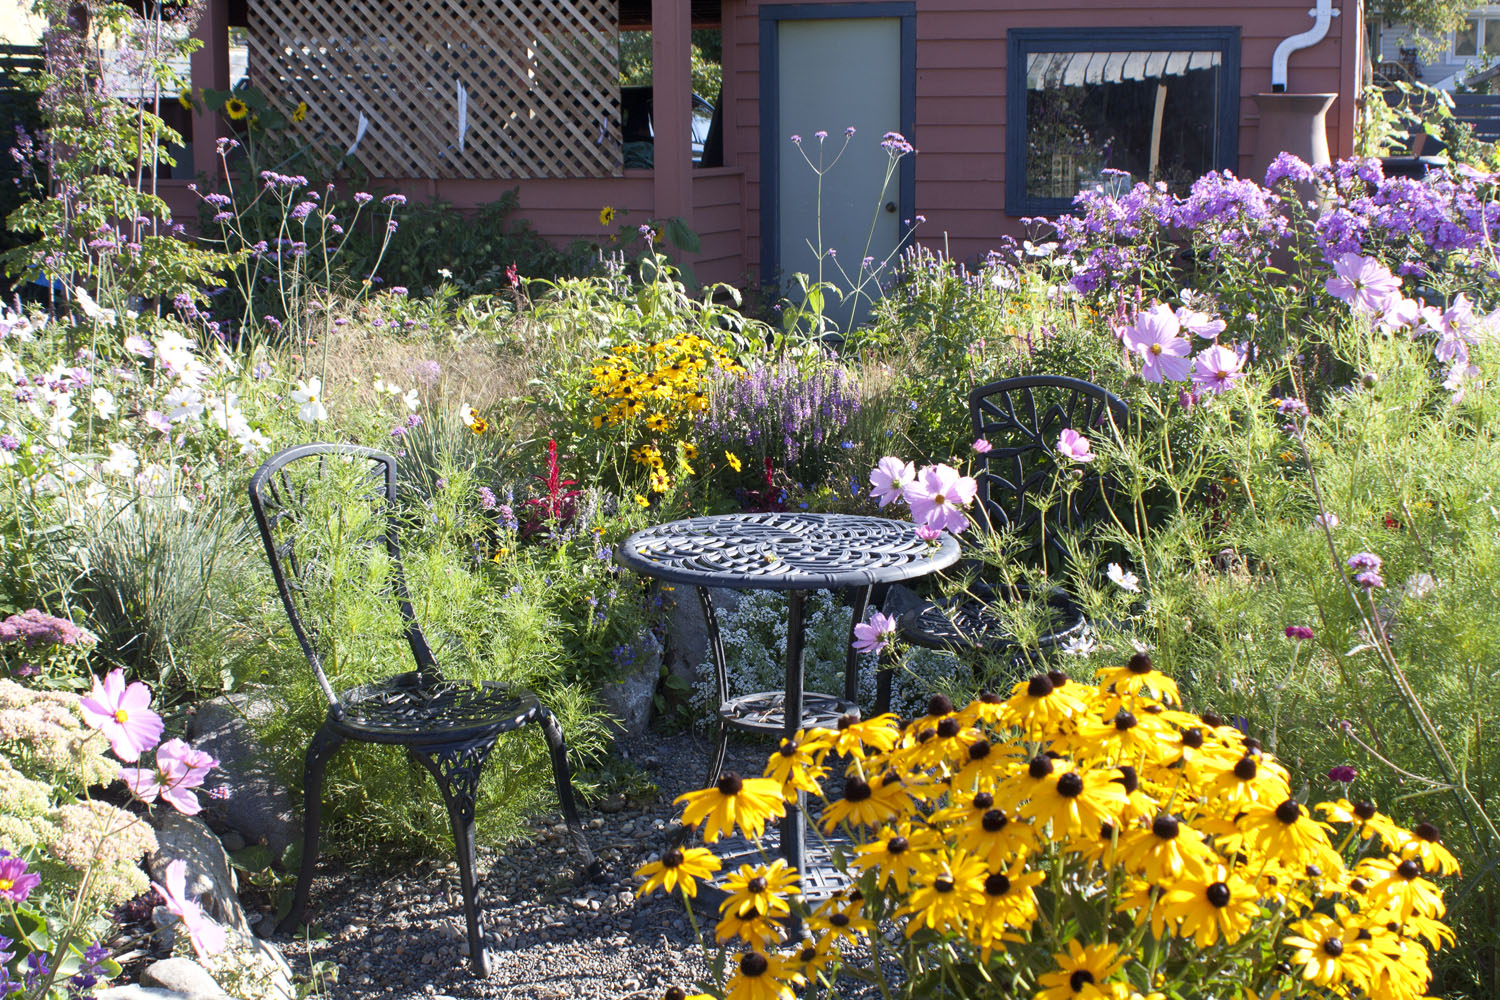 late summer flowers around a small table and chairs